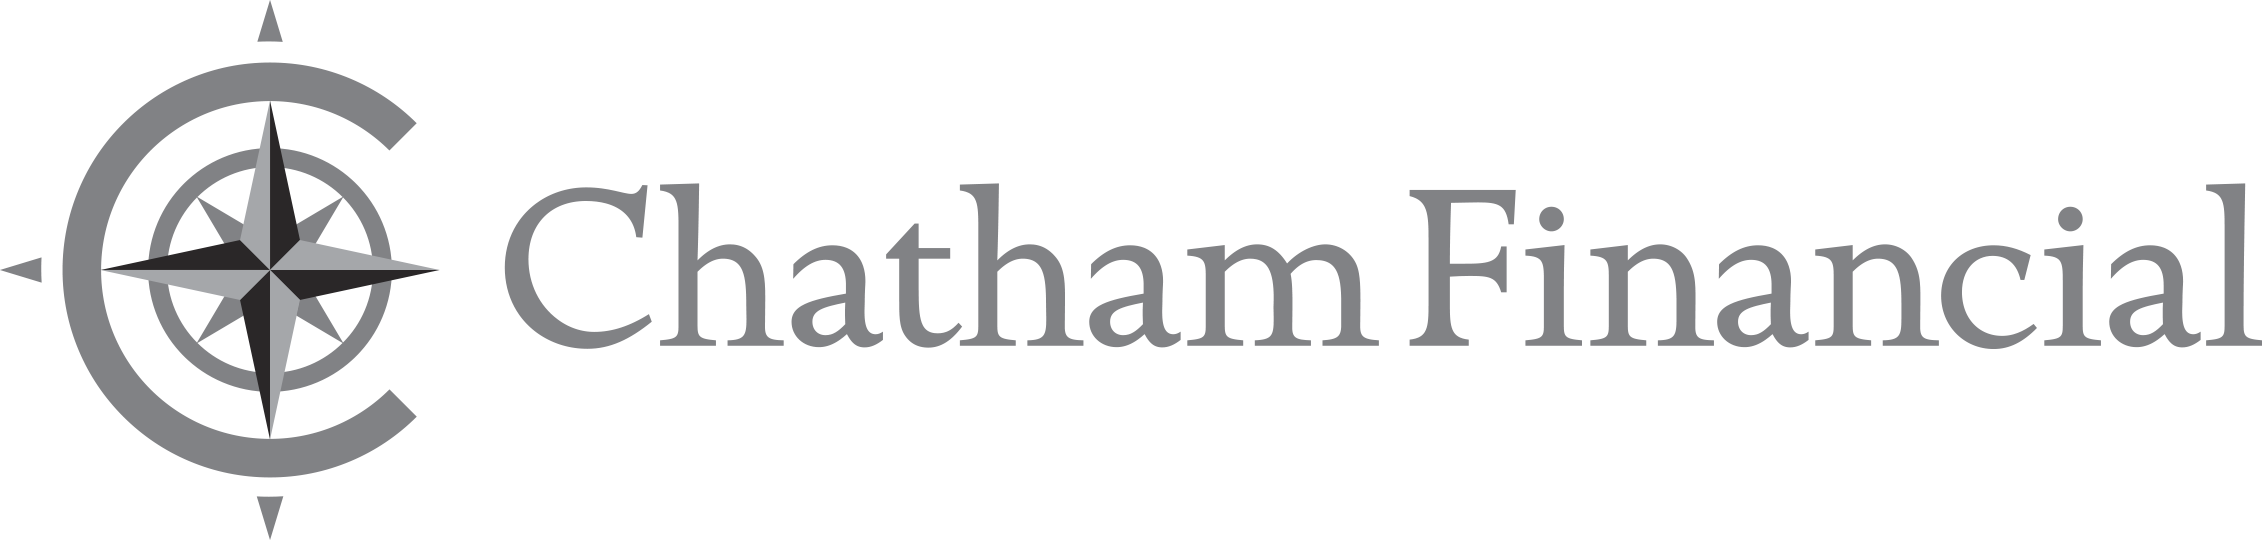 chatham-financial-logo